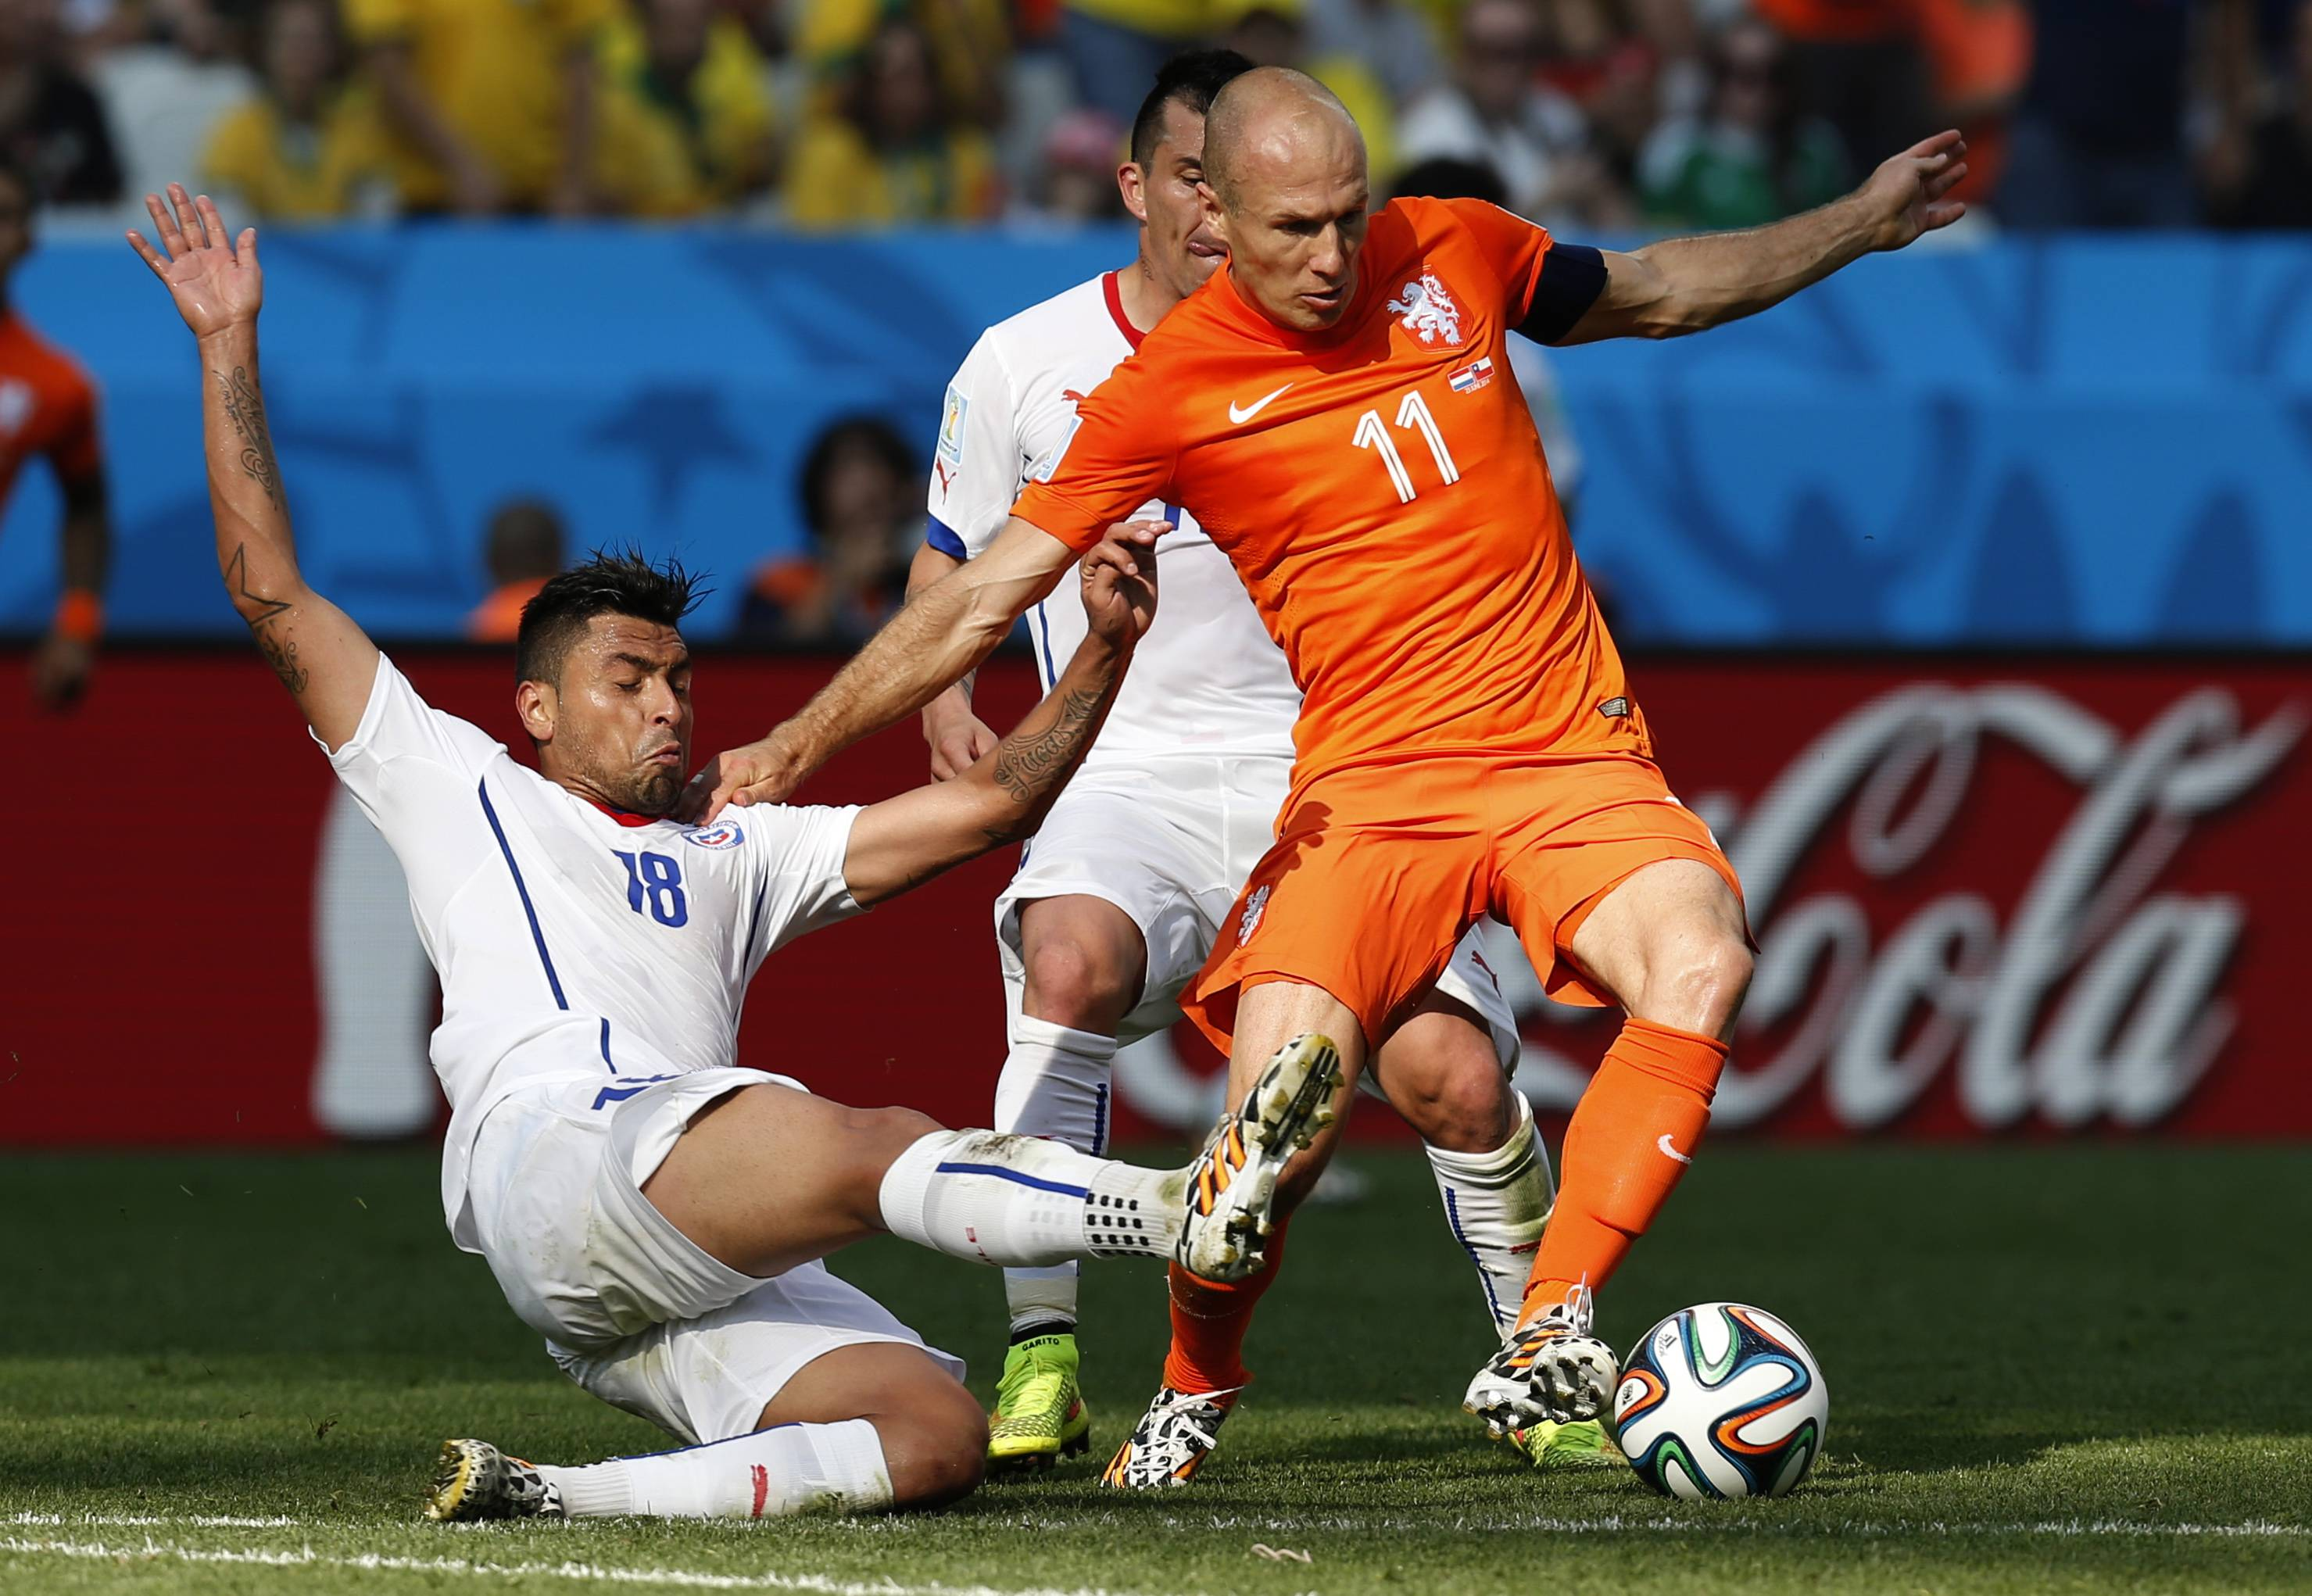 Chile's Gonzalo Jara, left, and Netherlands' Arjen Robben challenge for the ball Monday during a Group B World Cup soccer match at the Itaquerao Stadium in Sao Paulo, Brazil.